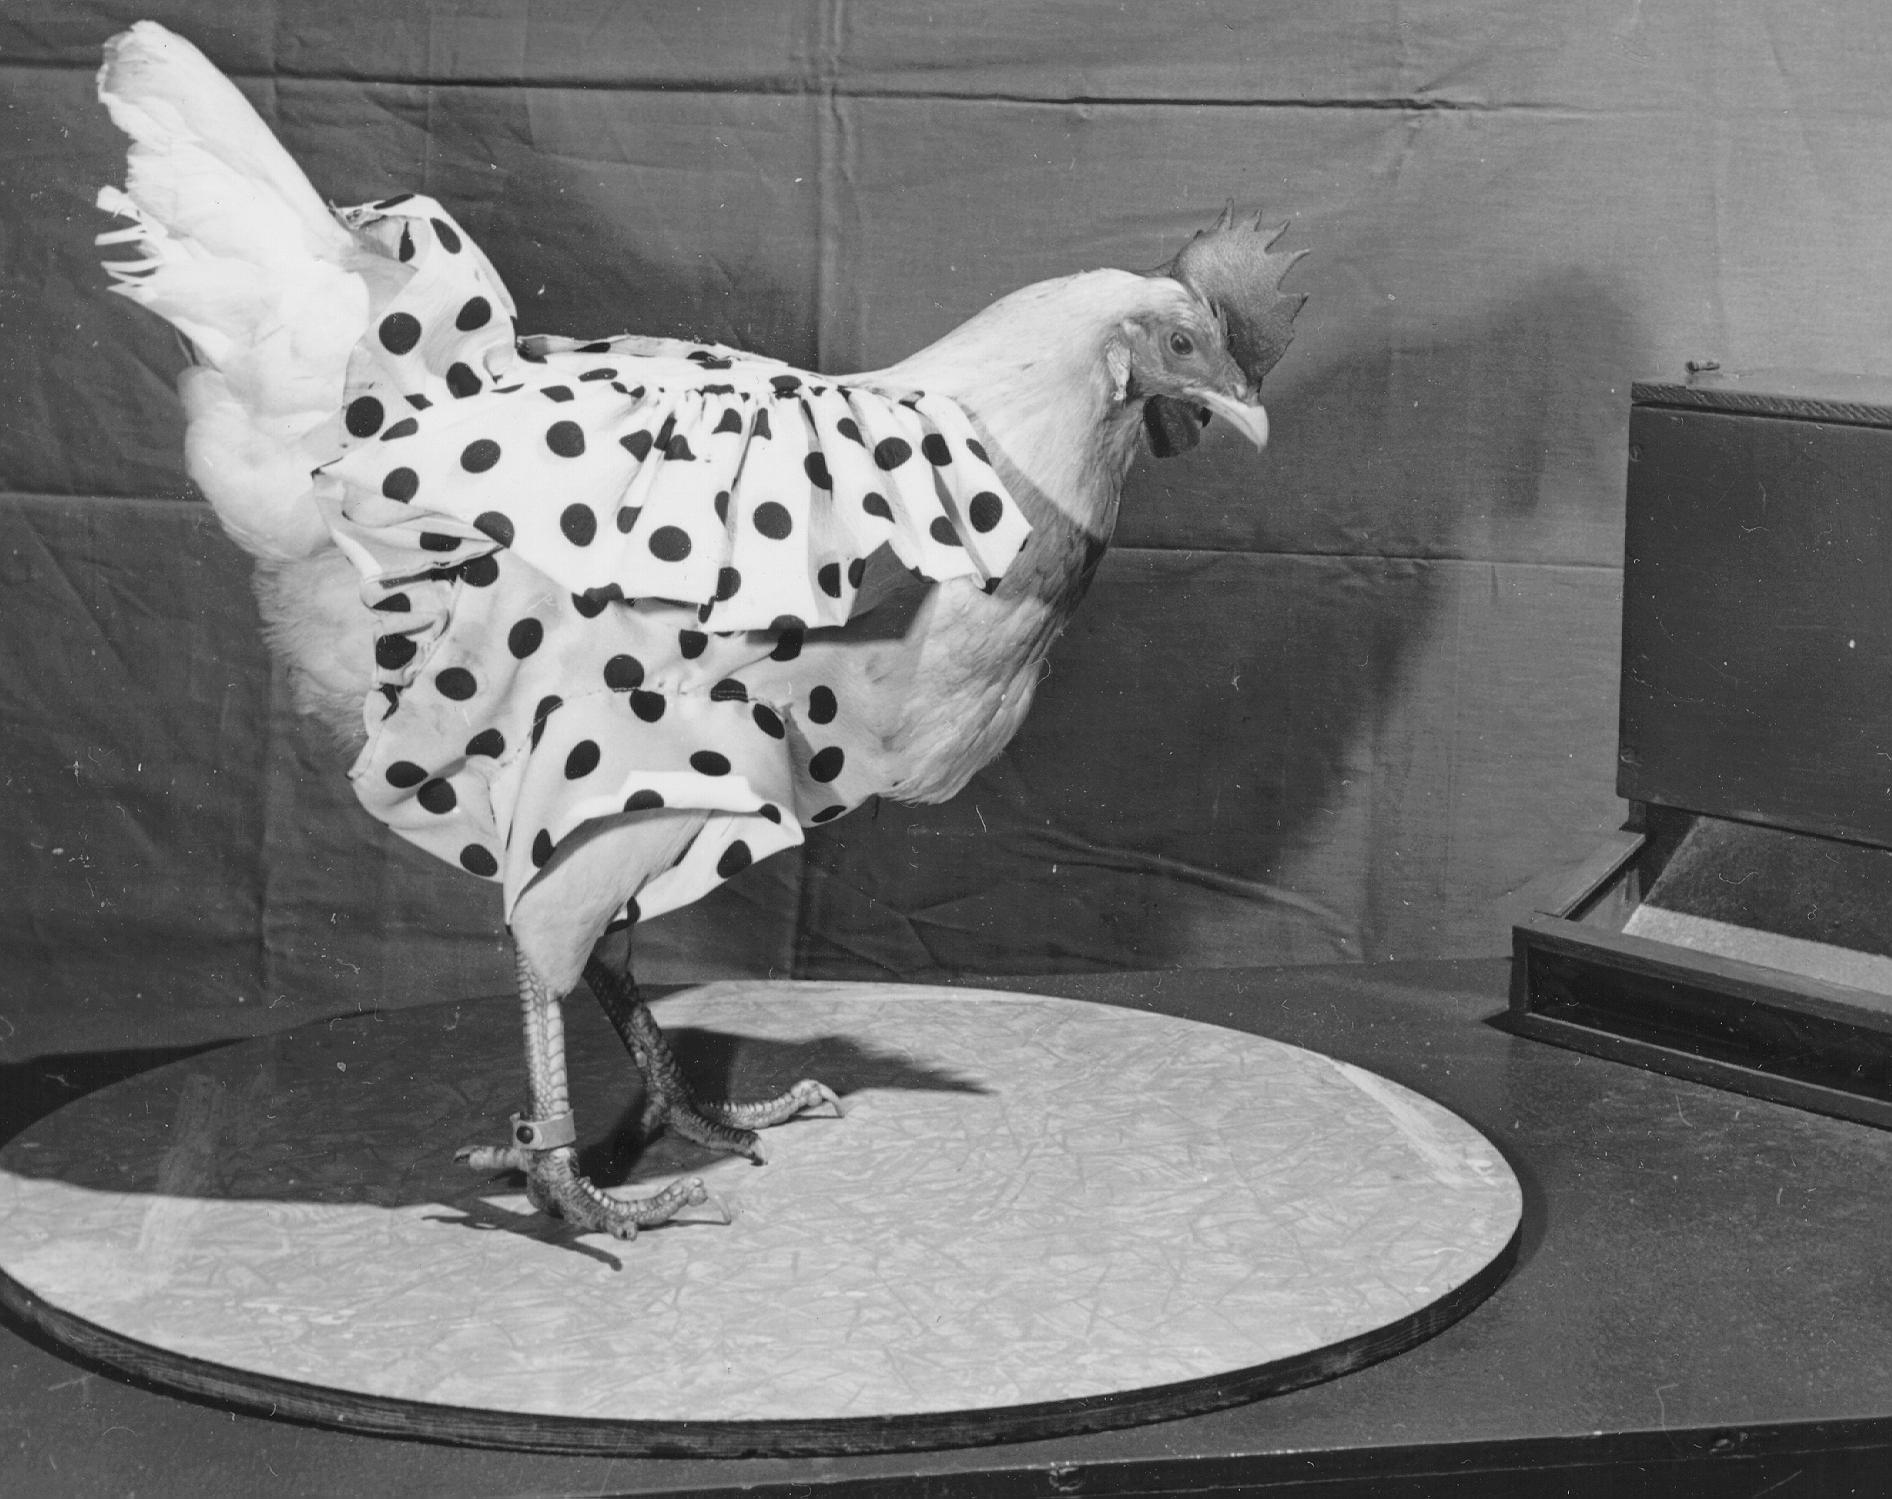 pictures of chickens this chicken miraculously lived for 18 months without a head pictures chickens of